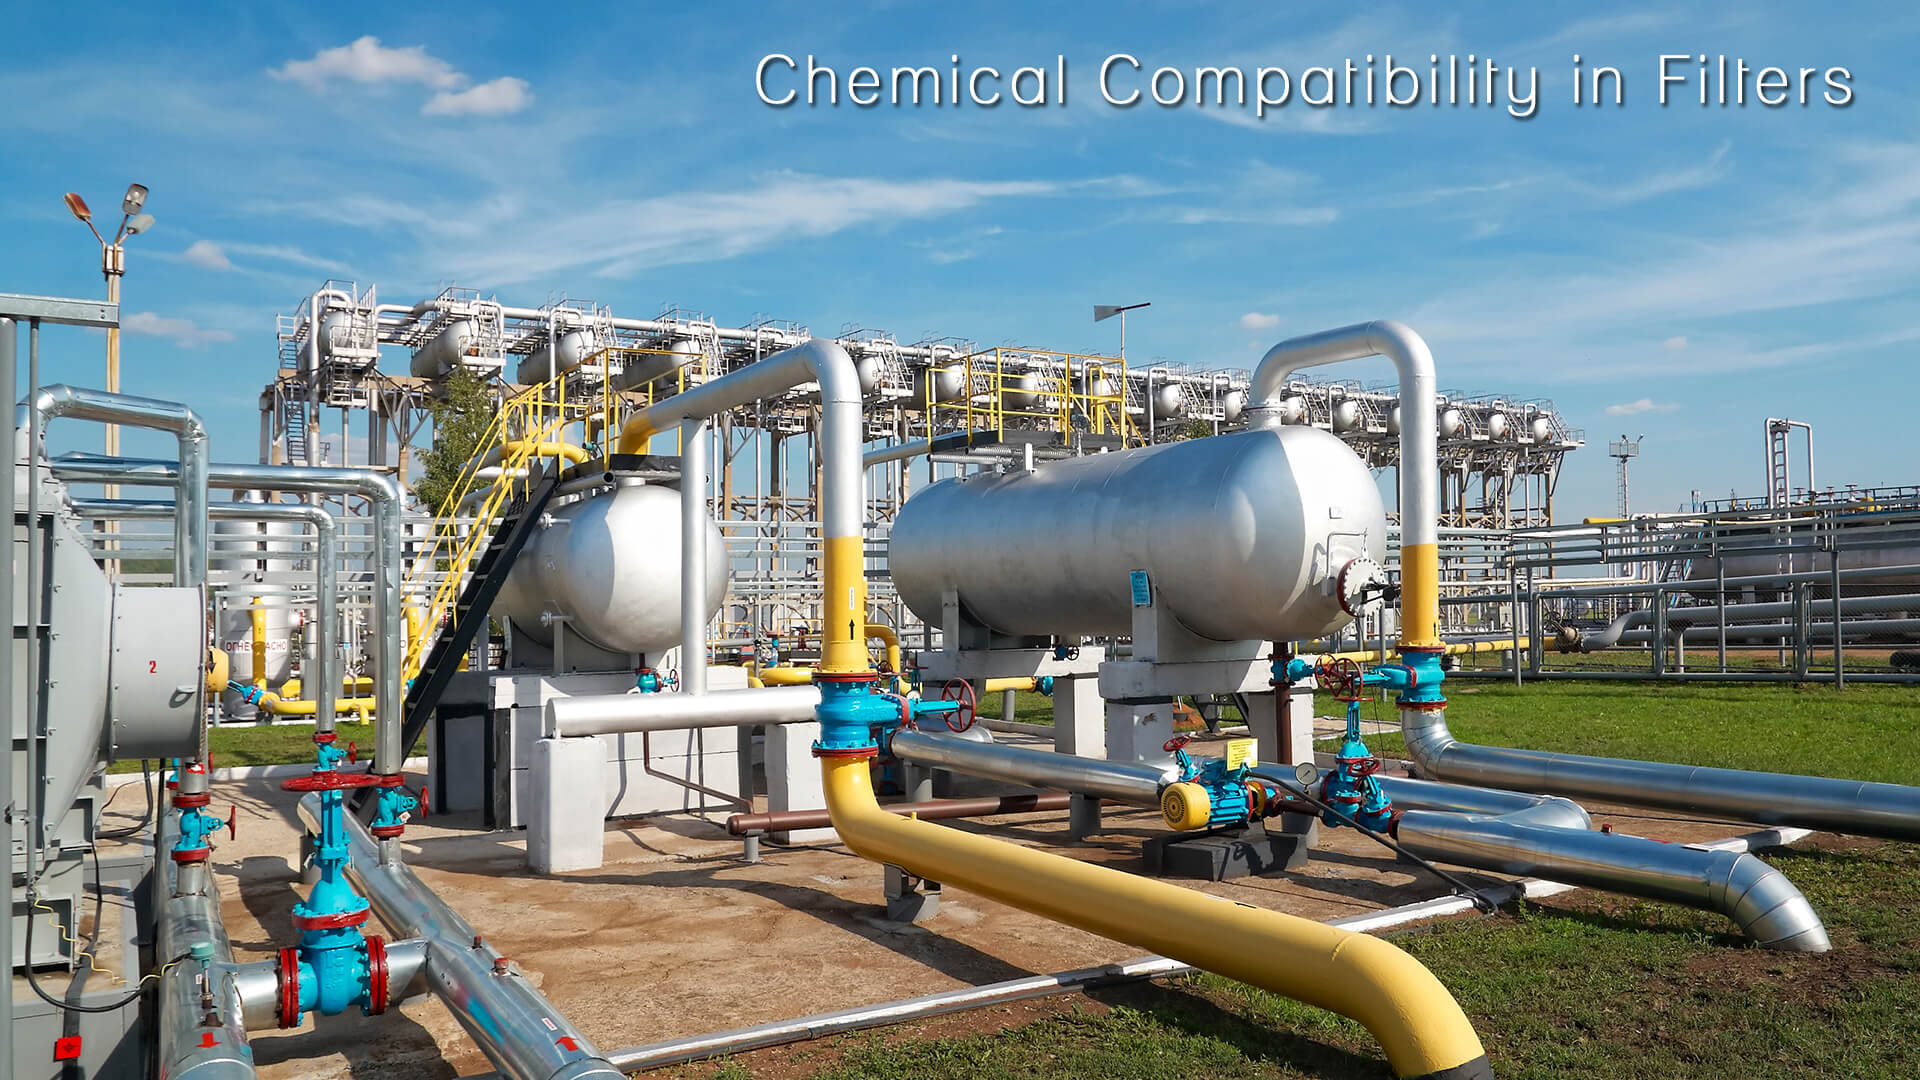 Chemical Compatibility in filters